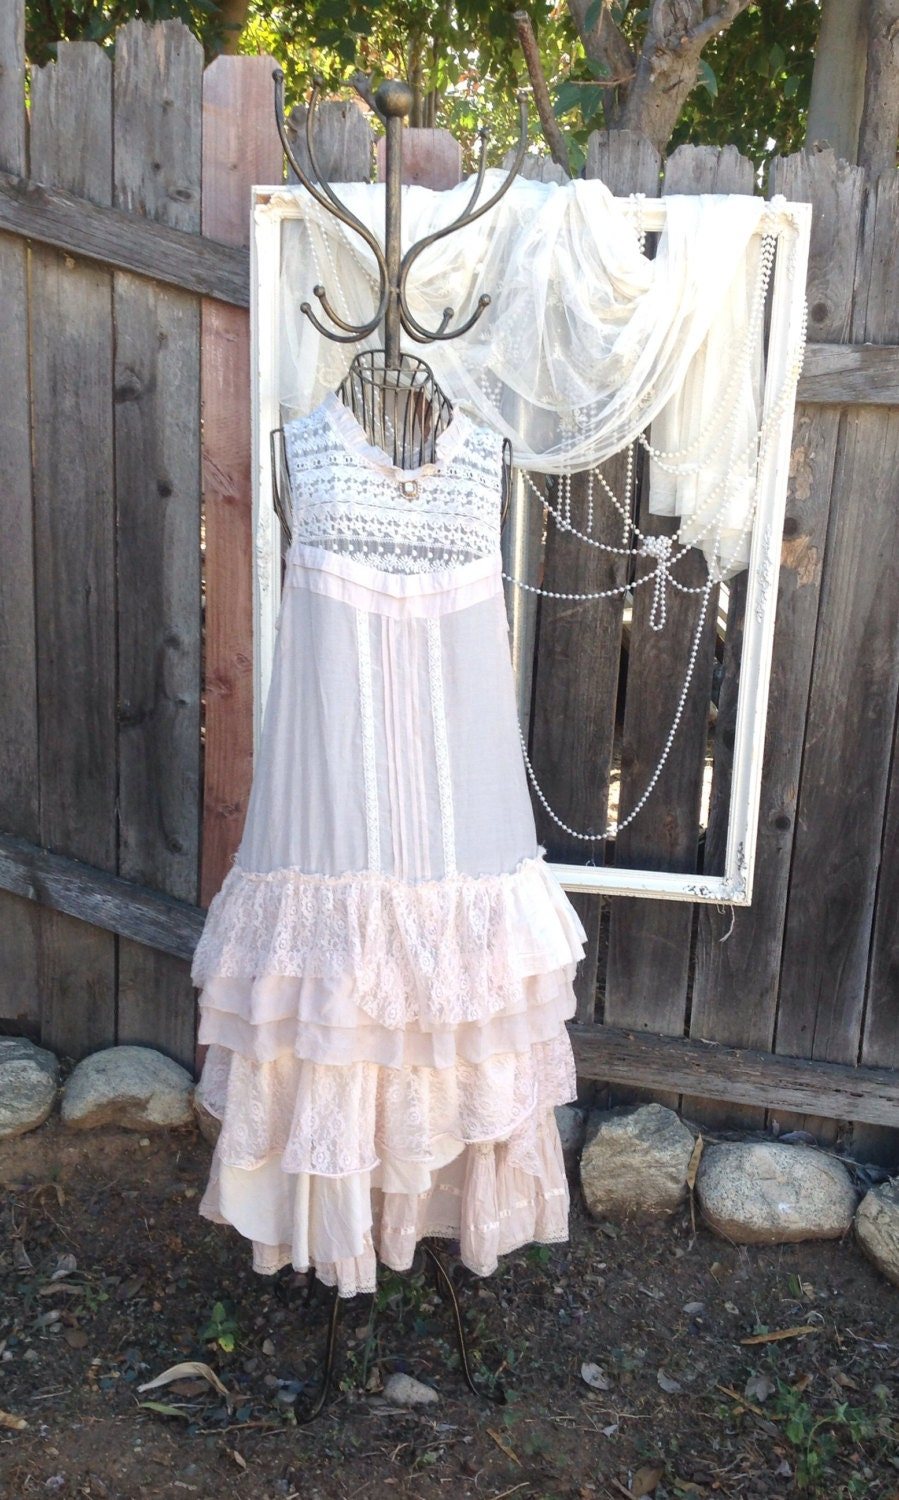 Pictures Of Shabby Chic Wedding Dresses : Country cottage weddings dress gypsy shabby chic upcycled